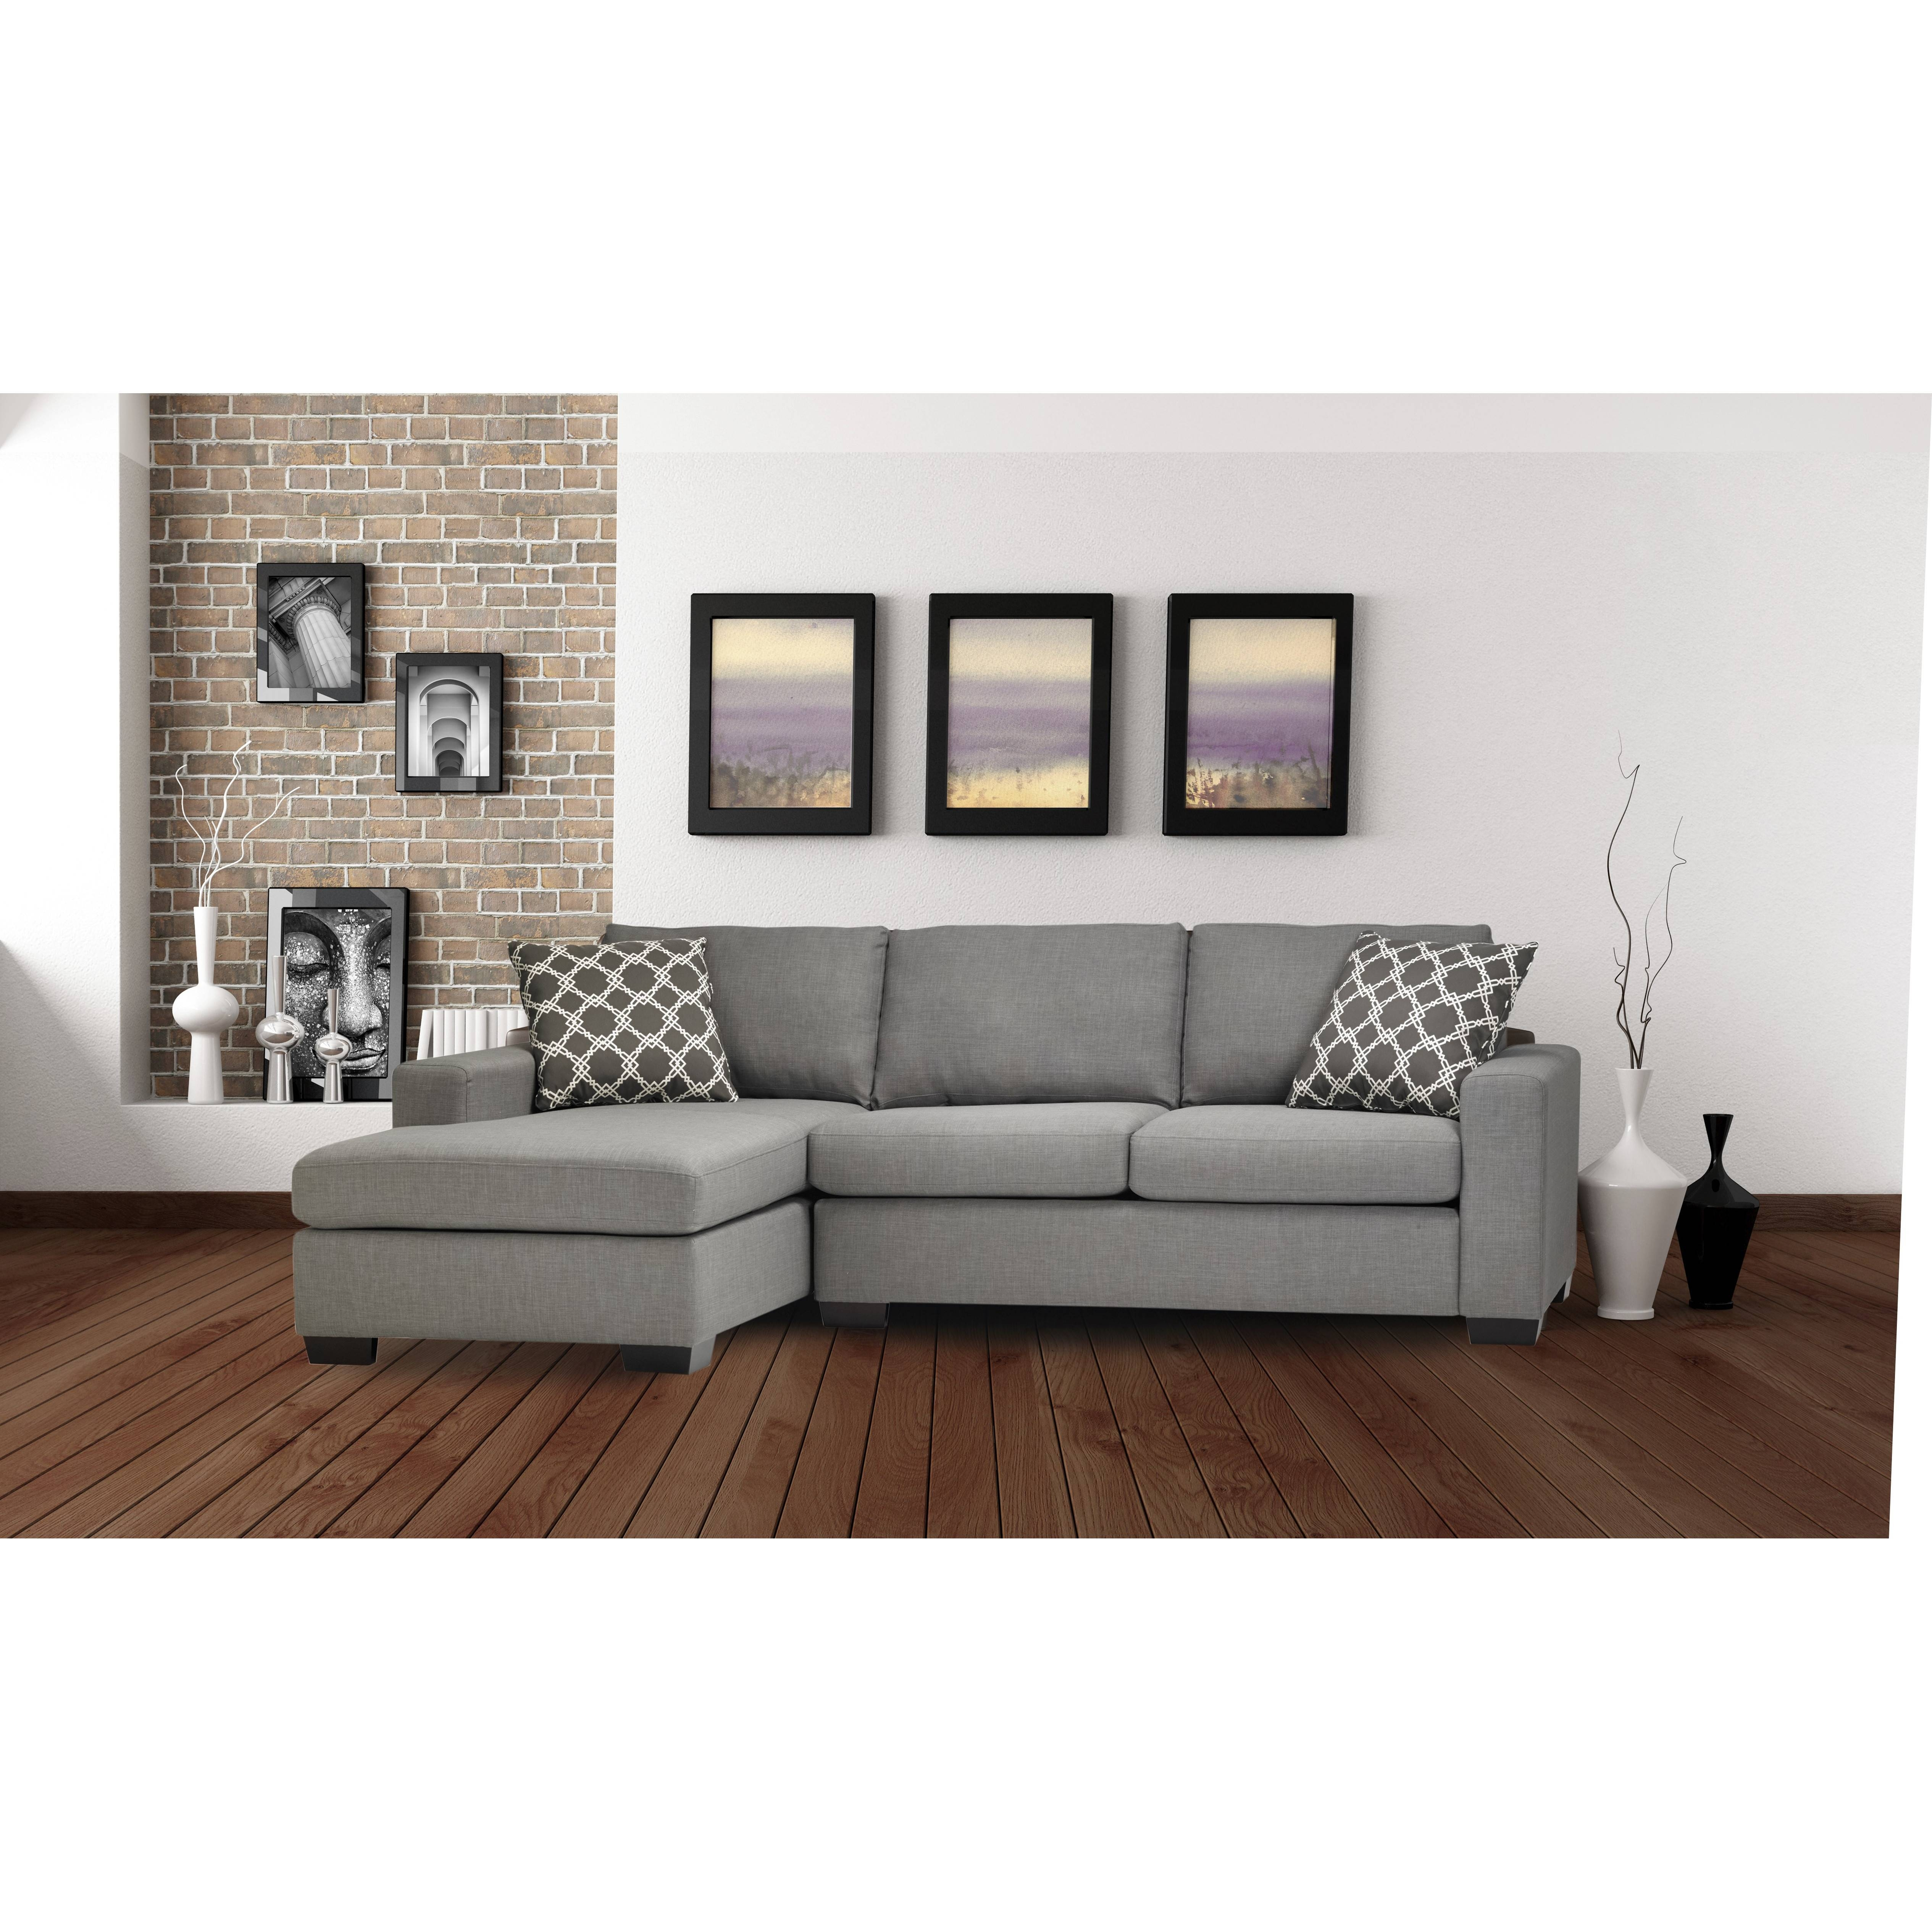 Sofas: Comfortable Lazy Boy Sofa Beds For Relax Your Body throughout Luxury Sofa Beds (Image 29 of 30)